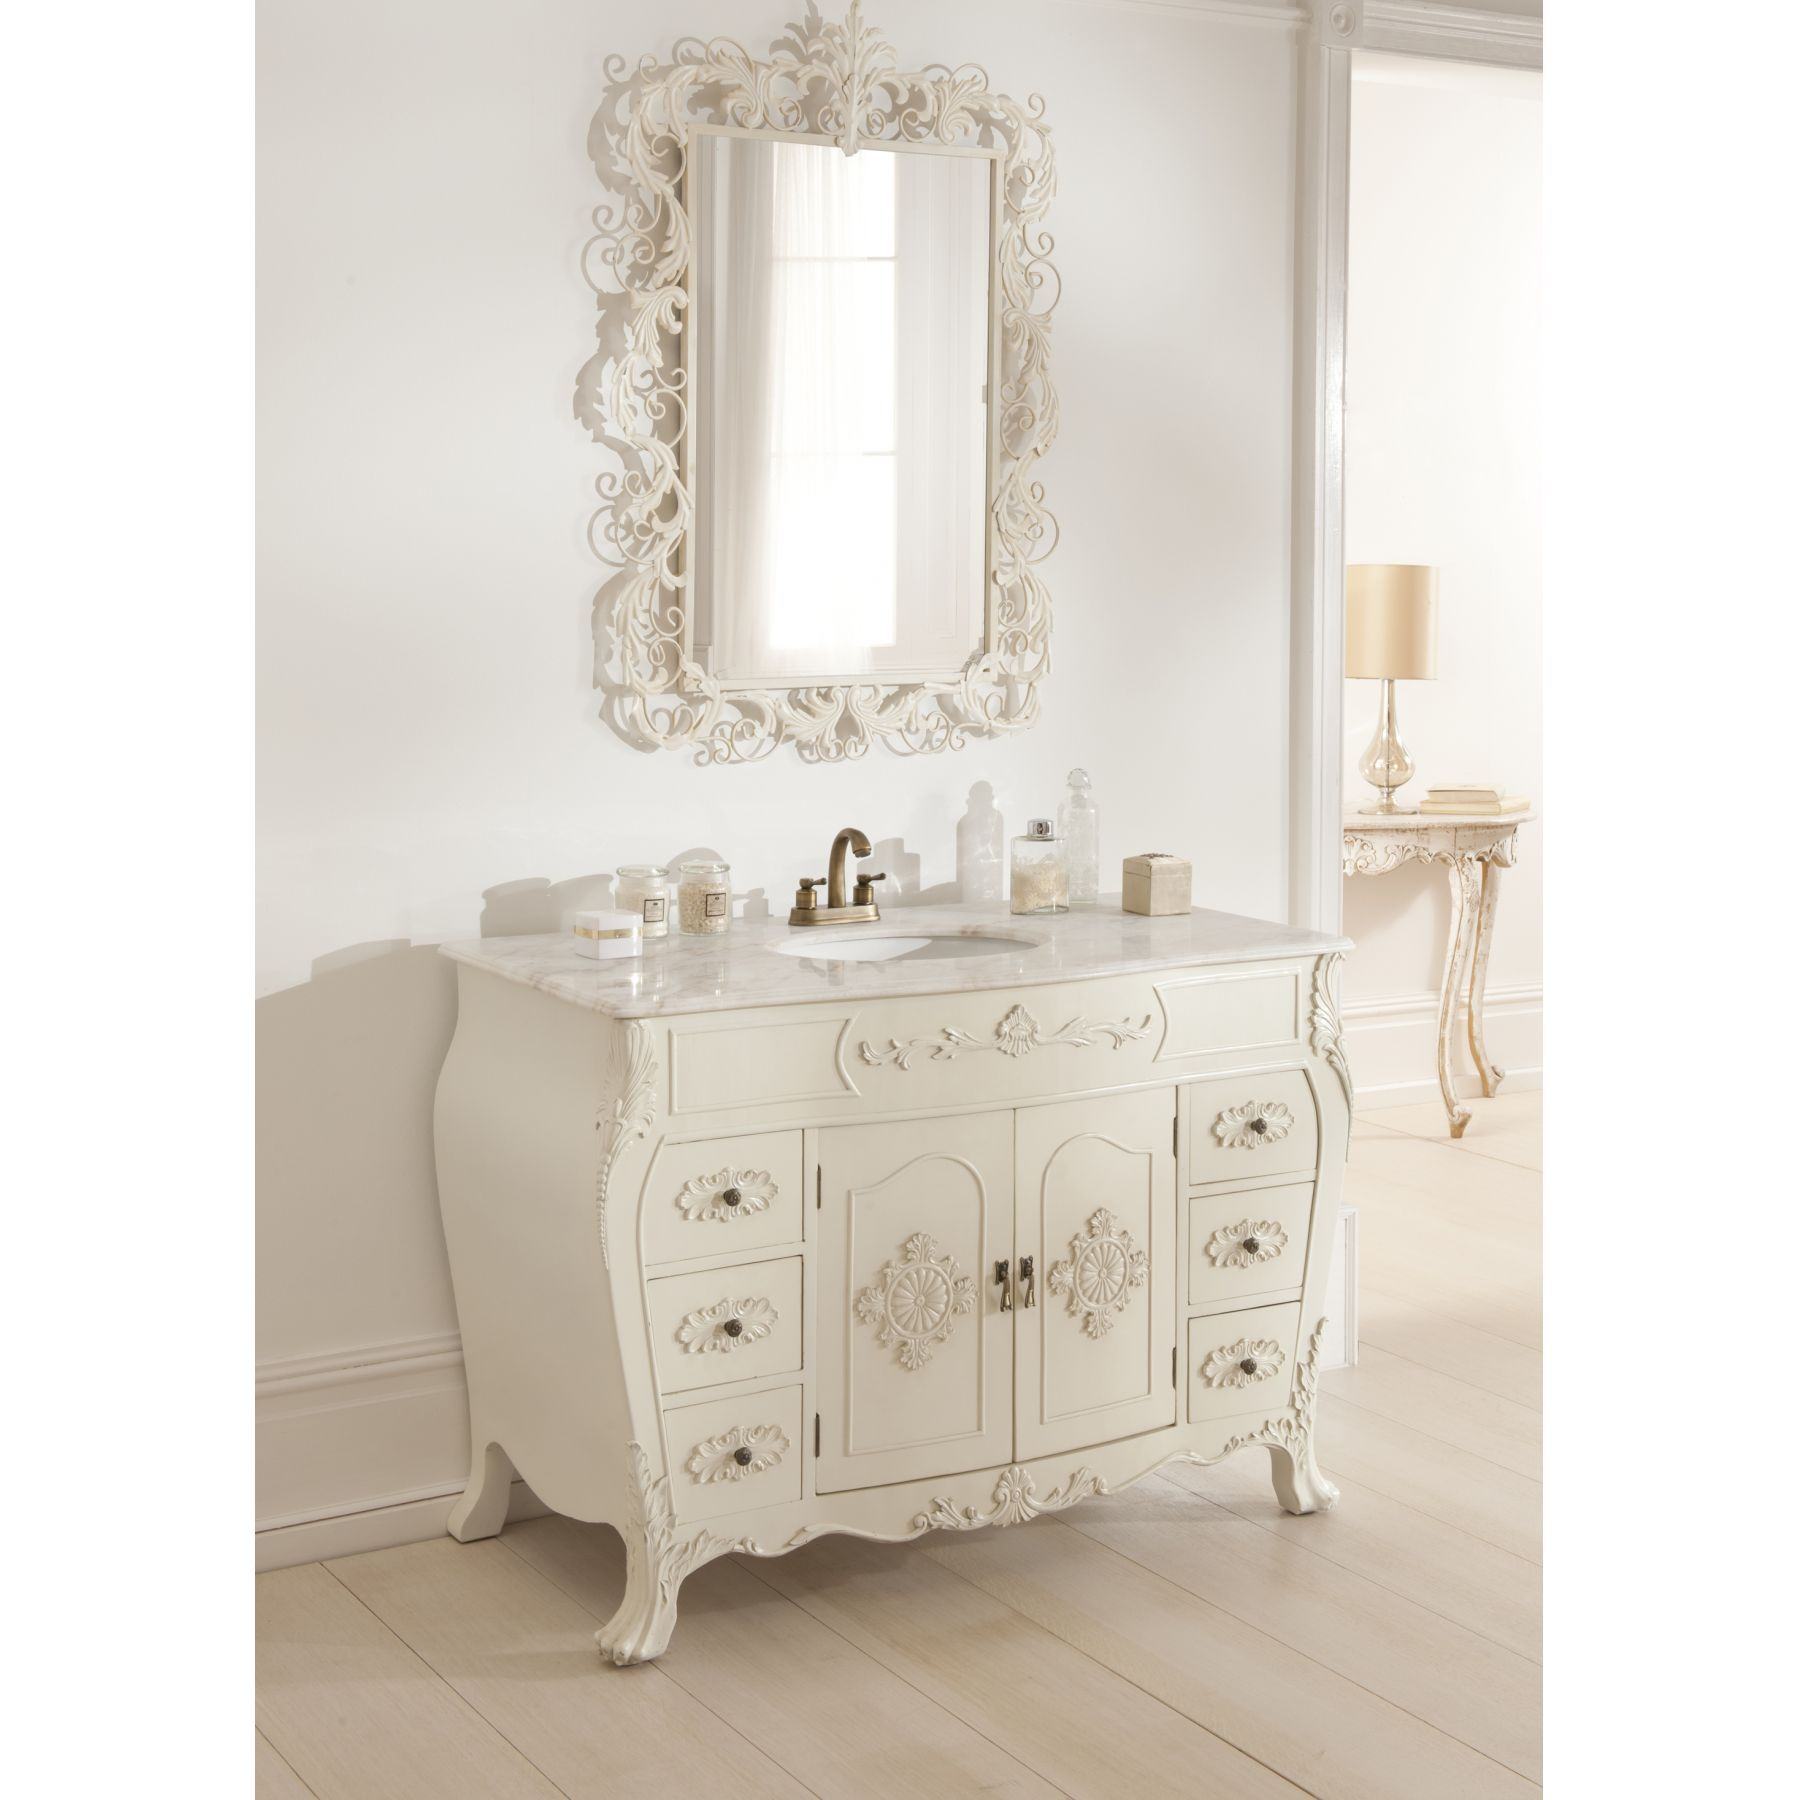 shabby chic furniture - Bathroom Cabinets Shabby Chic